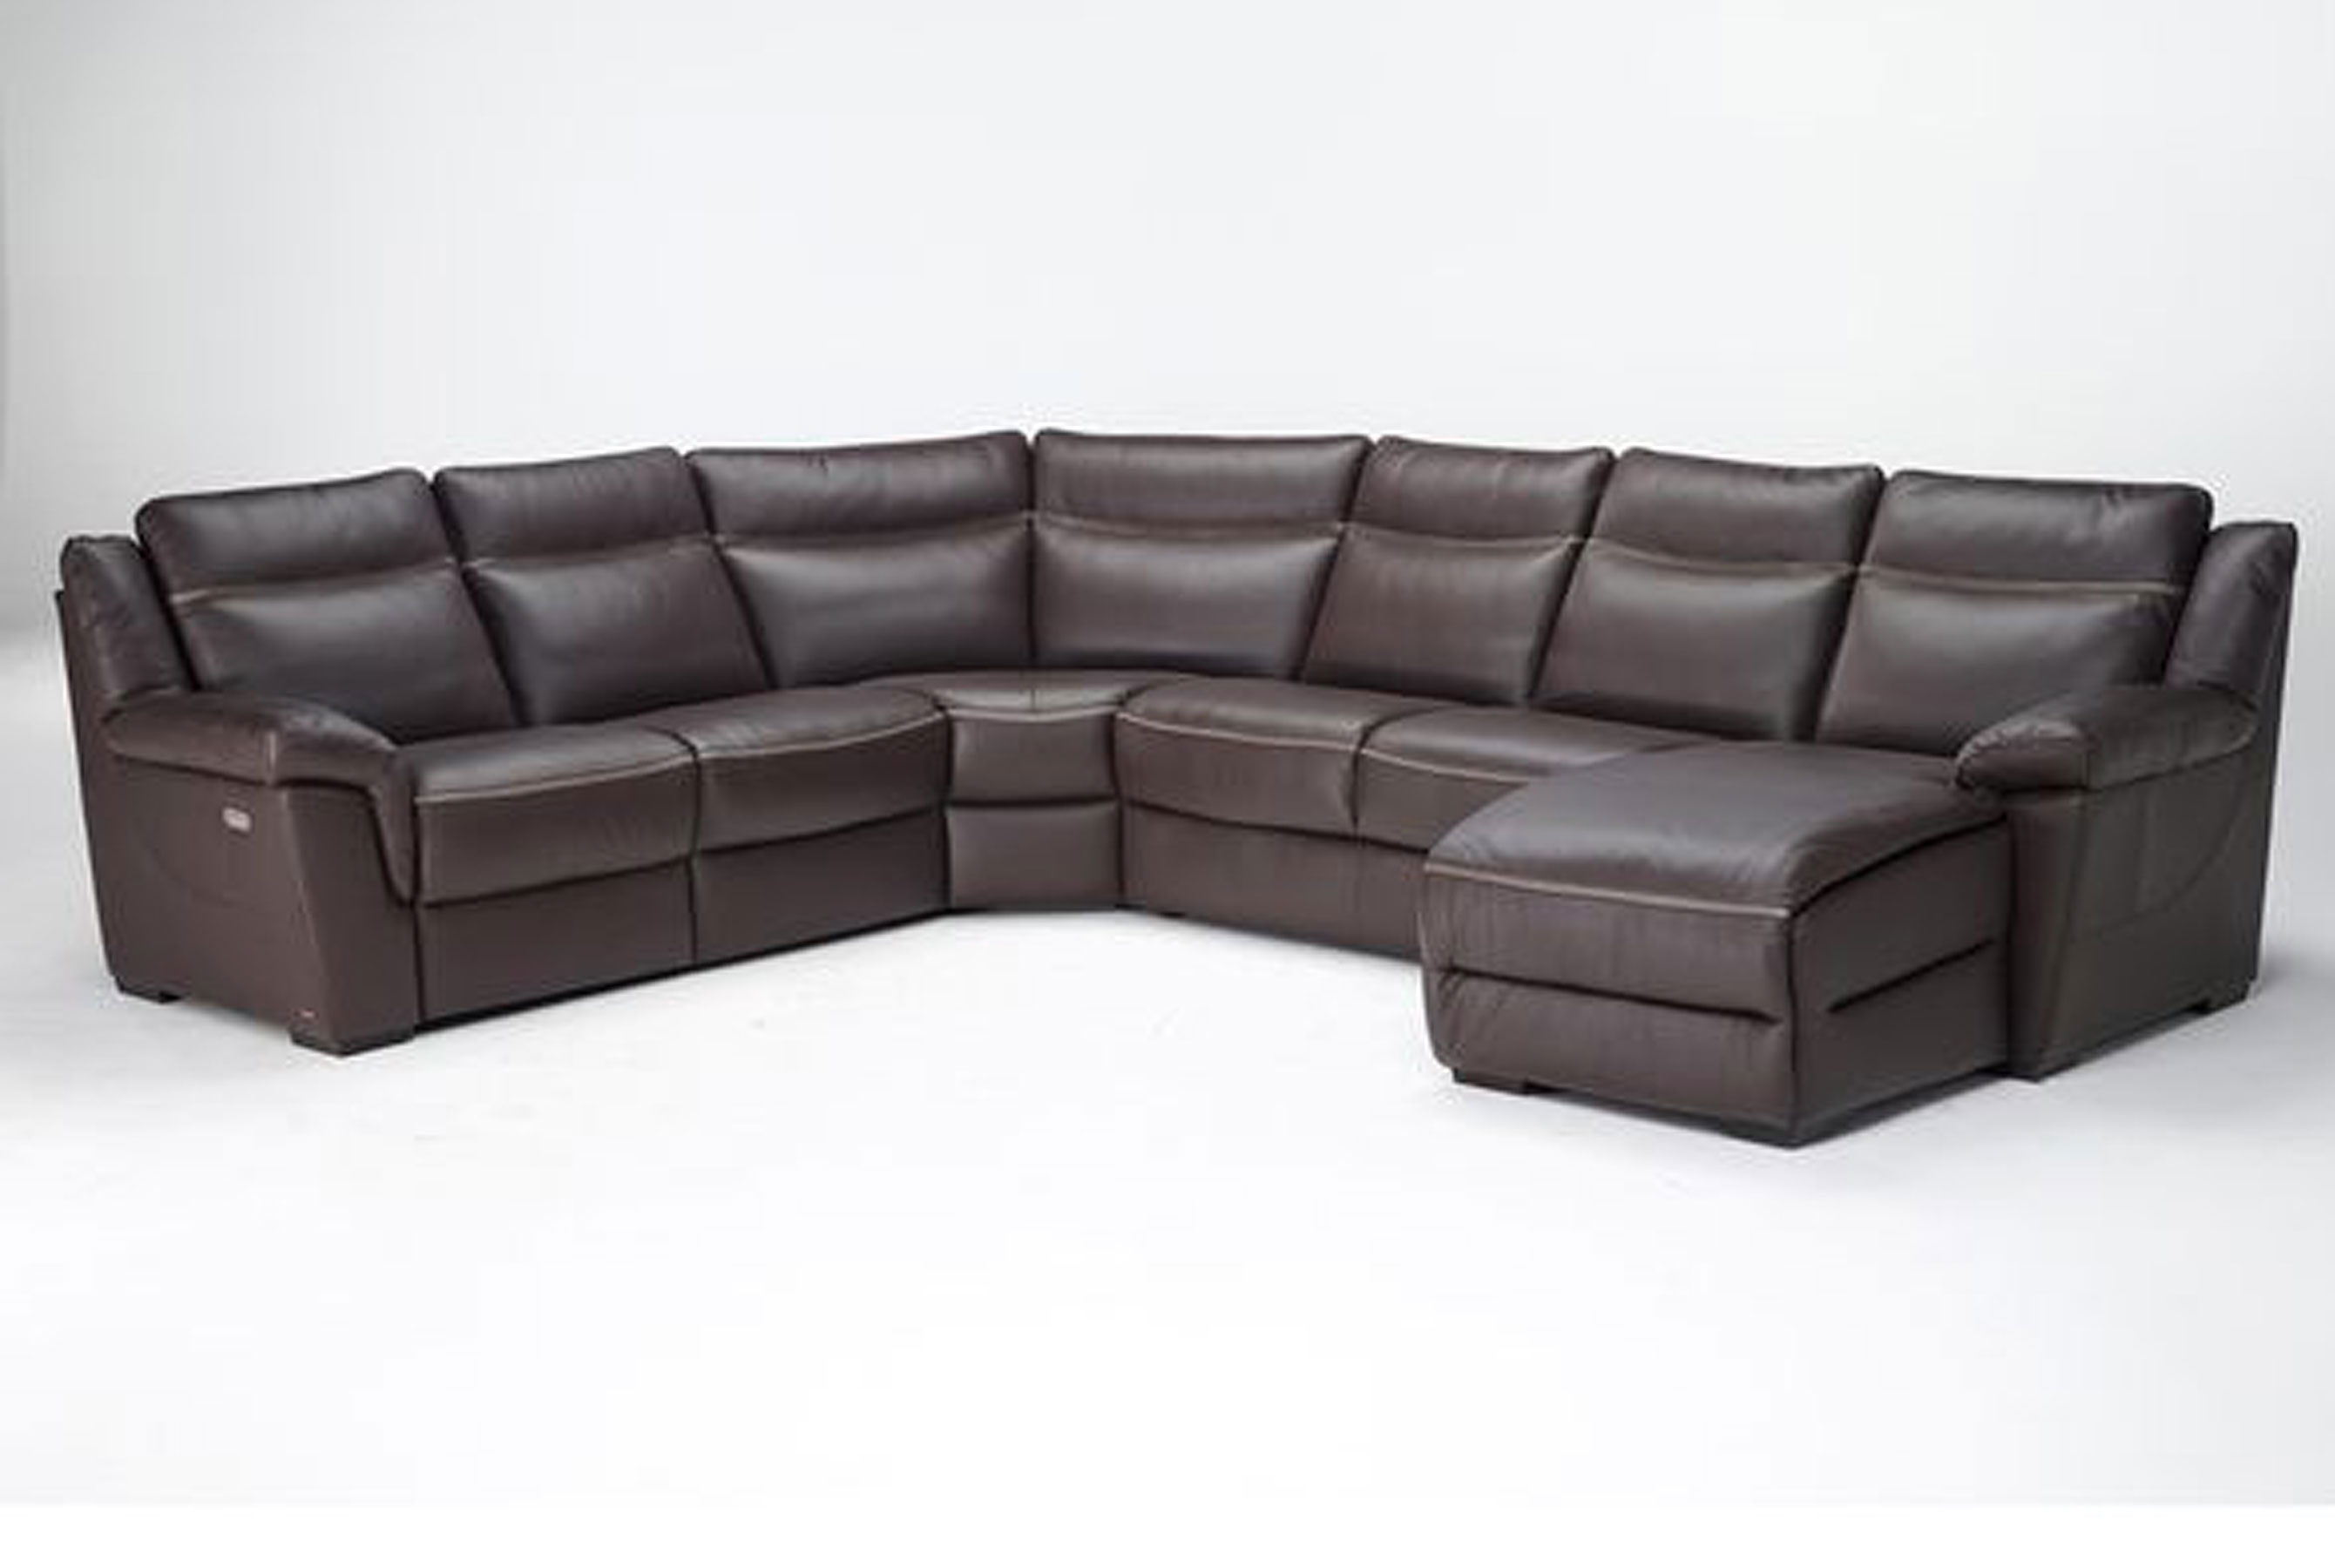 to sofa set furniture of latest pertaining sofas top size room large leather sectionals sectional traditional grain living full